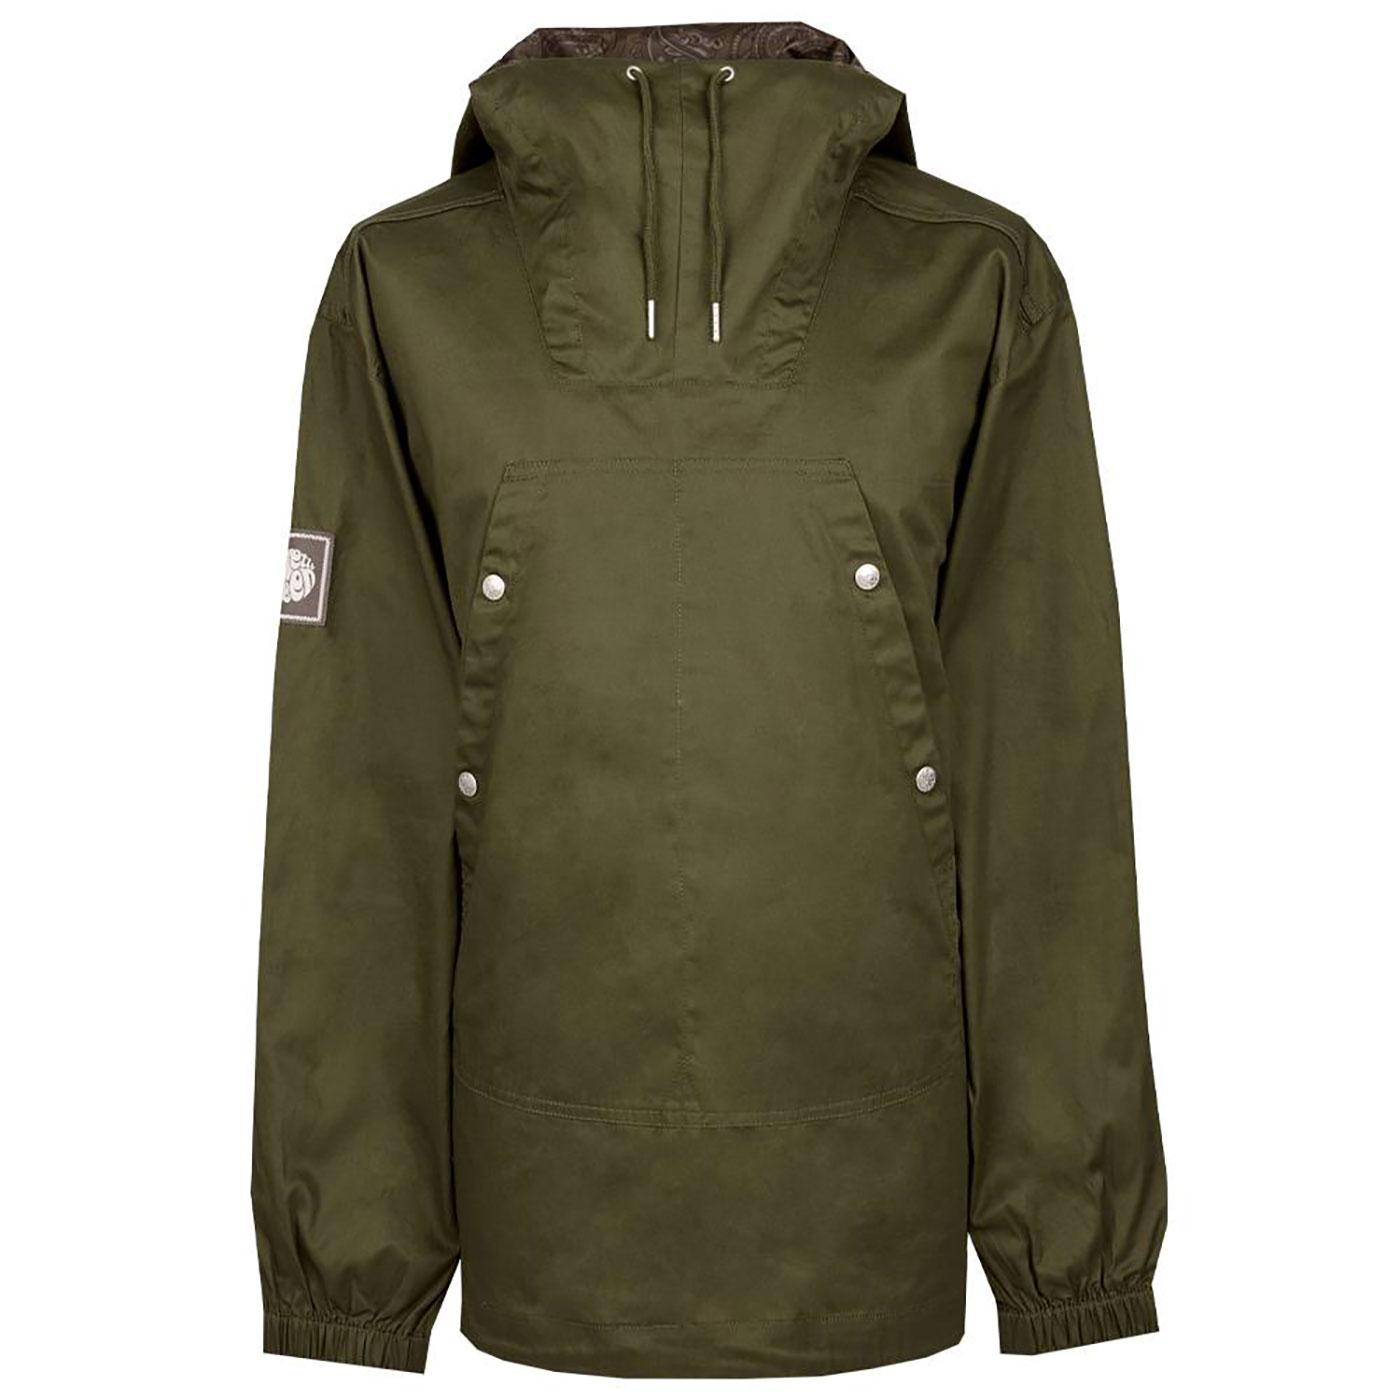 PRETTY GREEN Mens Retro 90's Overhead Jacket G